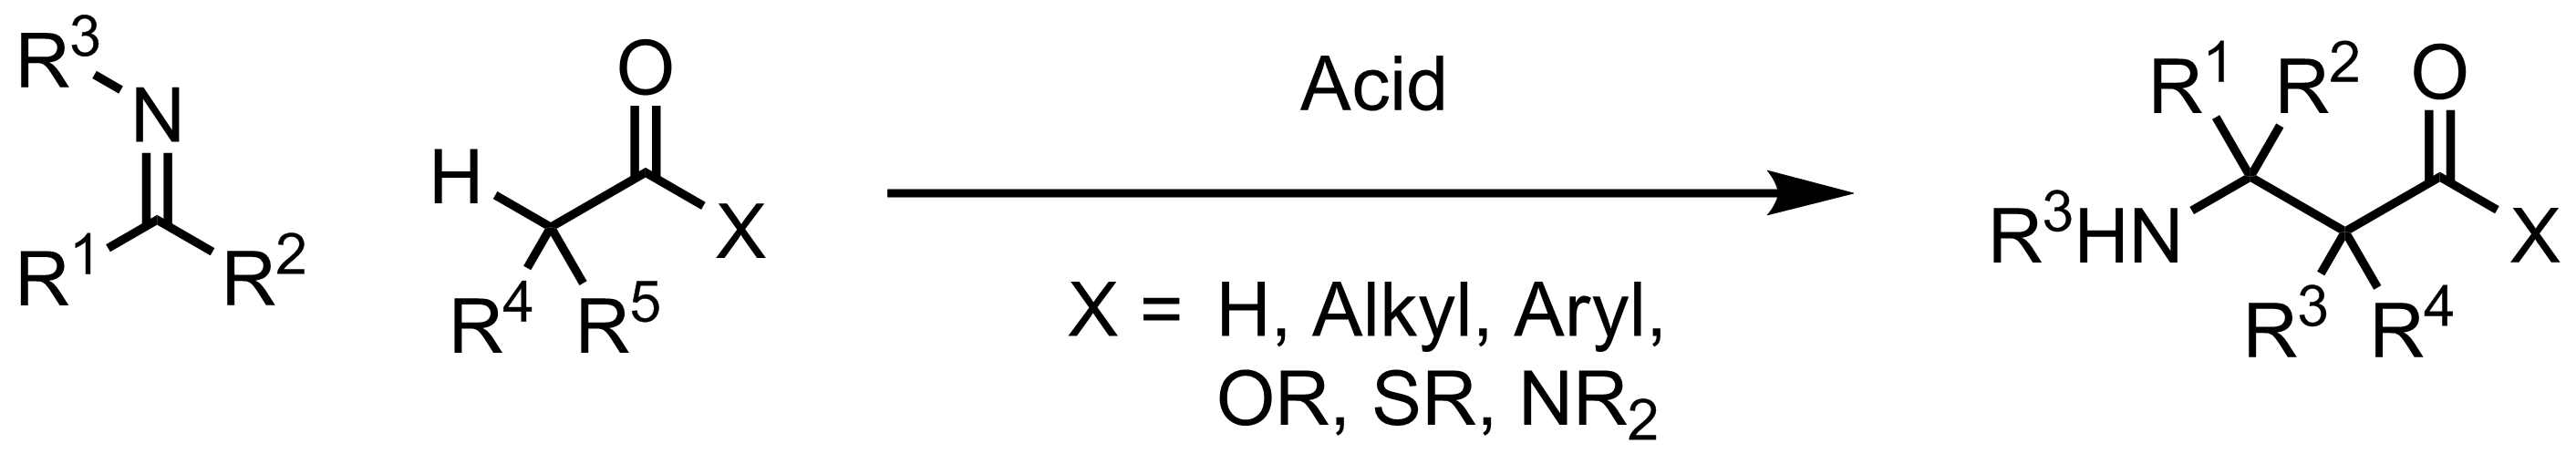 Schematic representation of the Mannich Reaction.